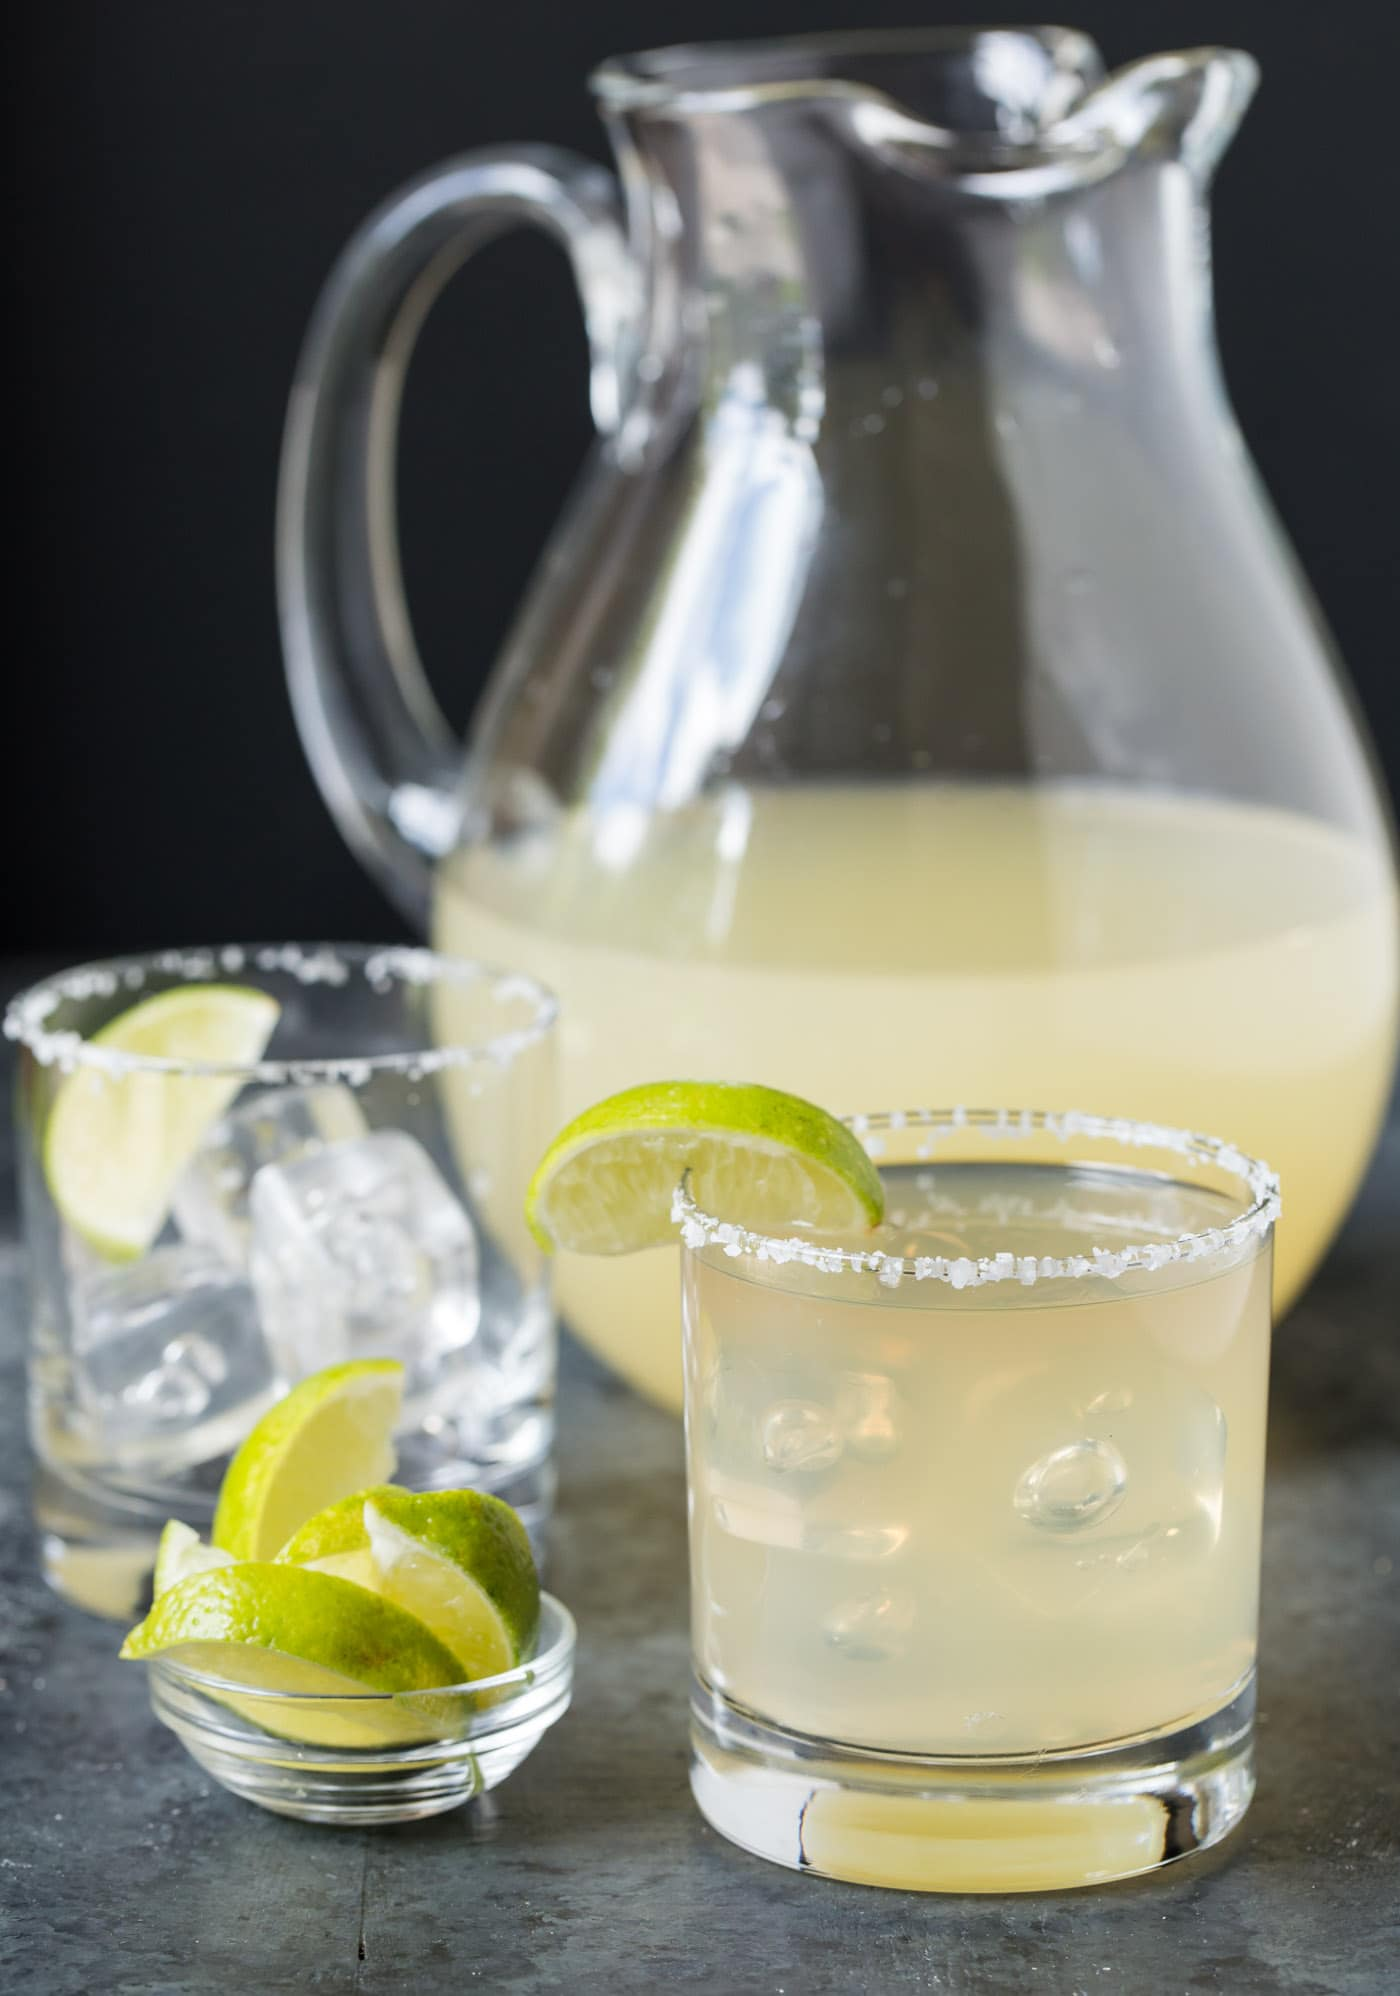 Pitcher of margaritas with filled glass and limes.